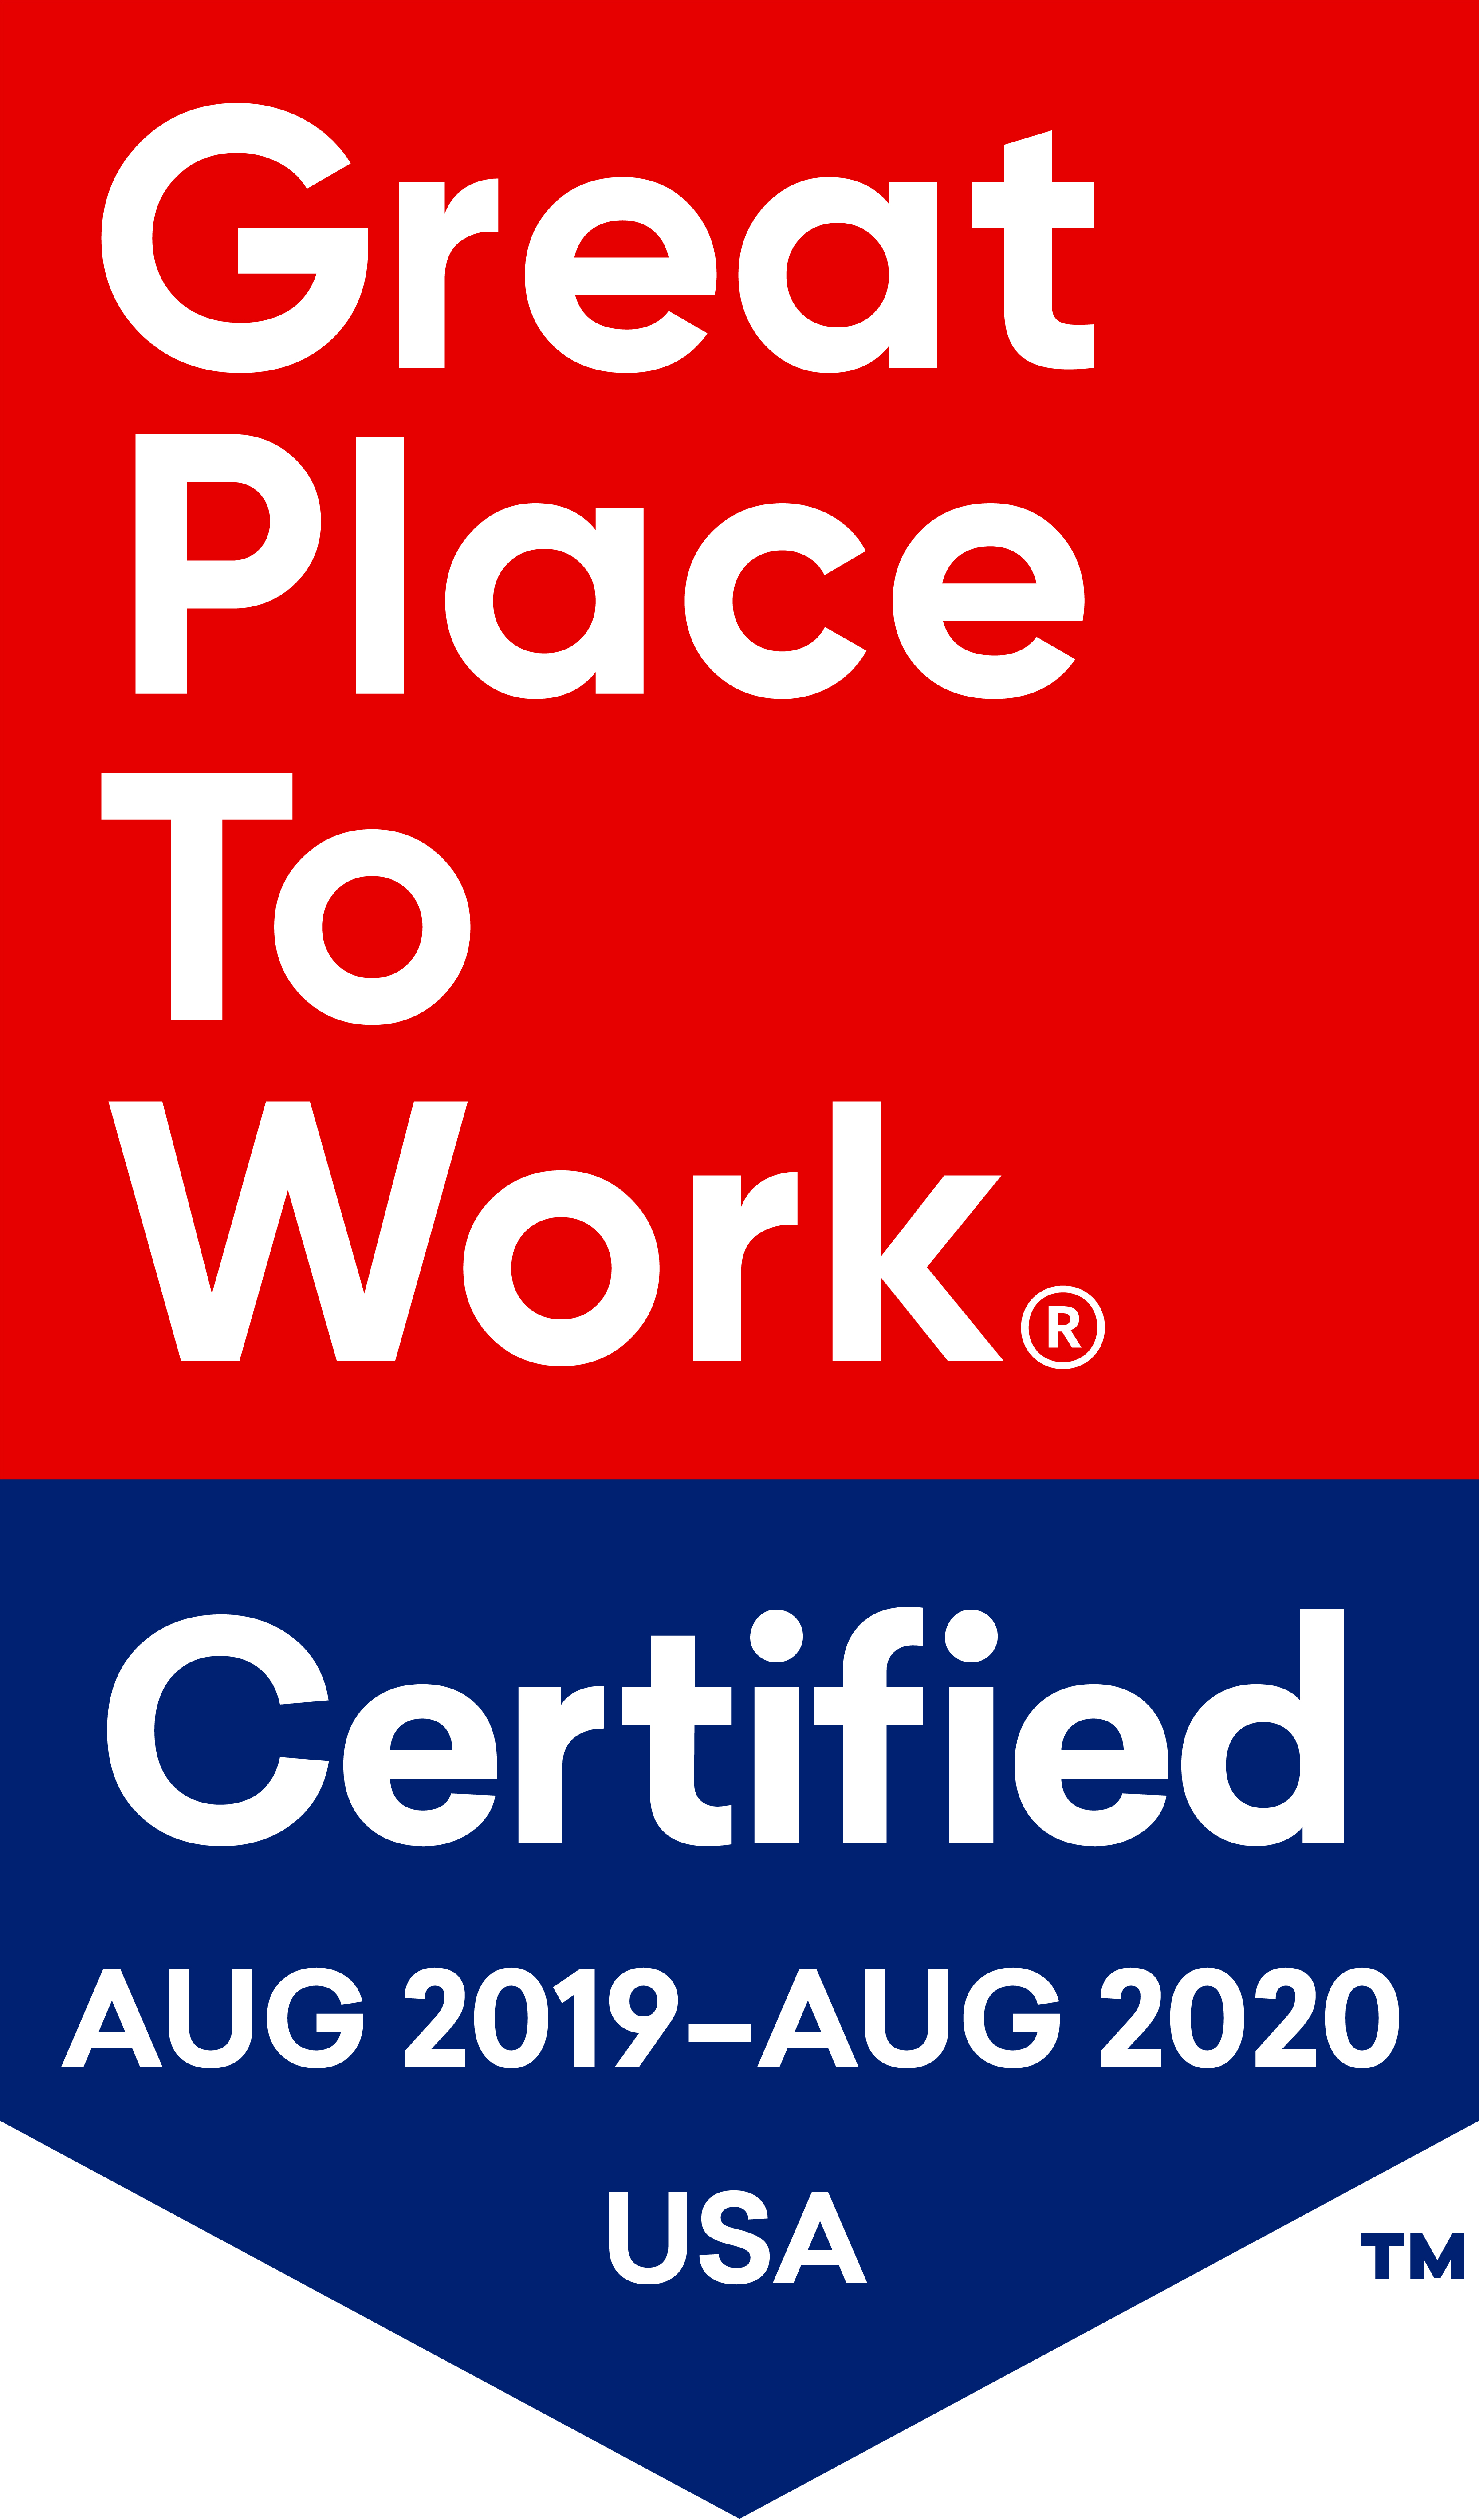 Carnival Cruise Line Earns Designation as a Great Place to Work-Certified™ Company